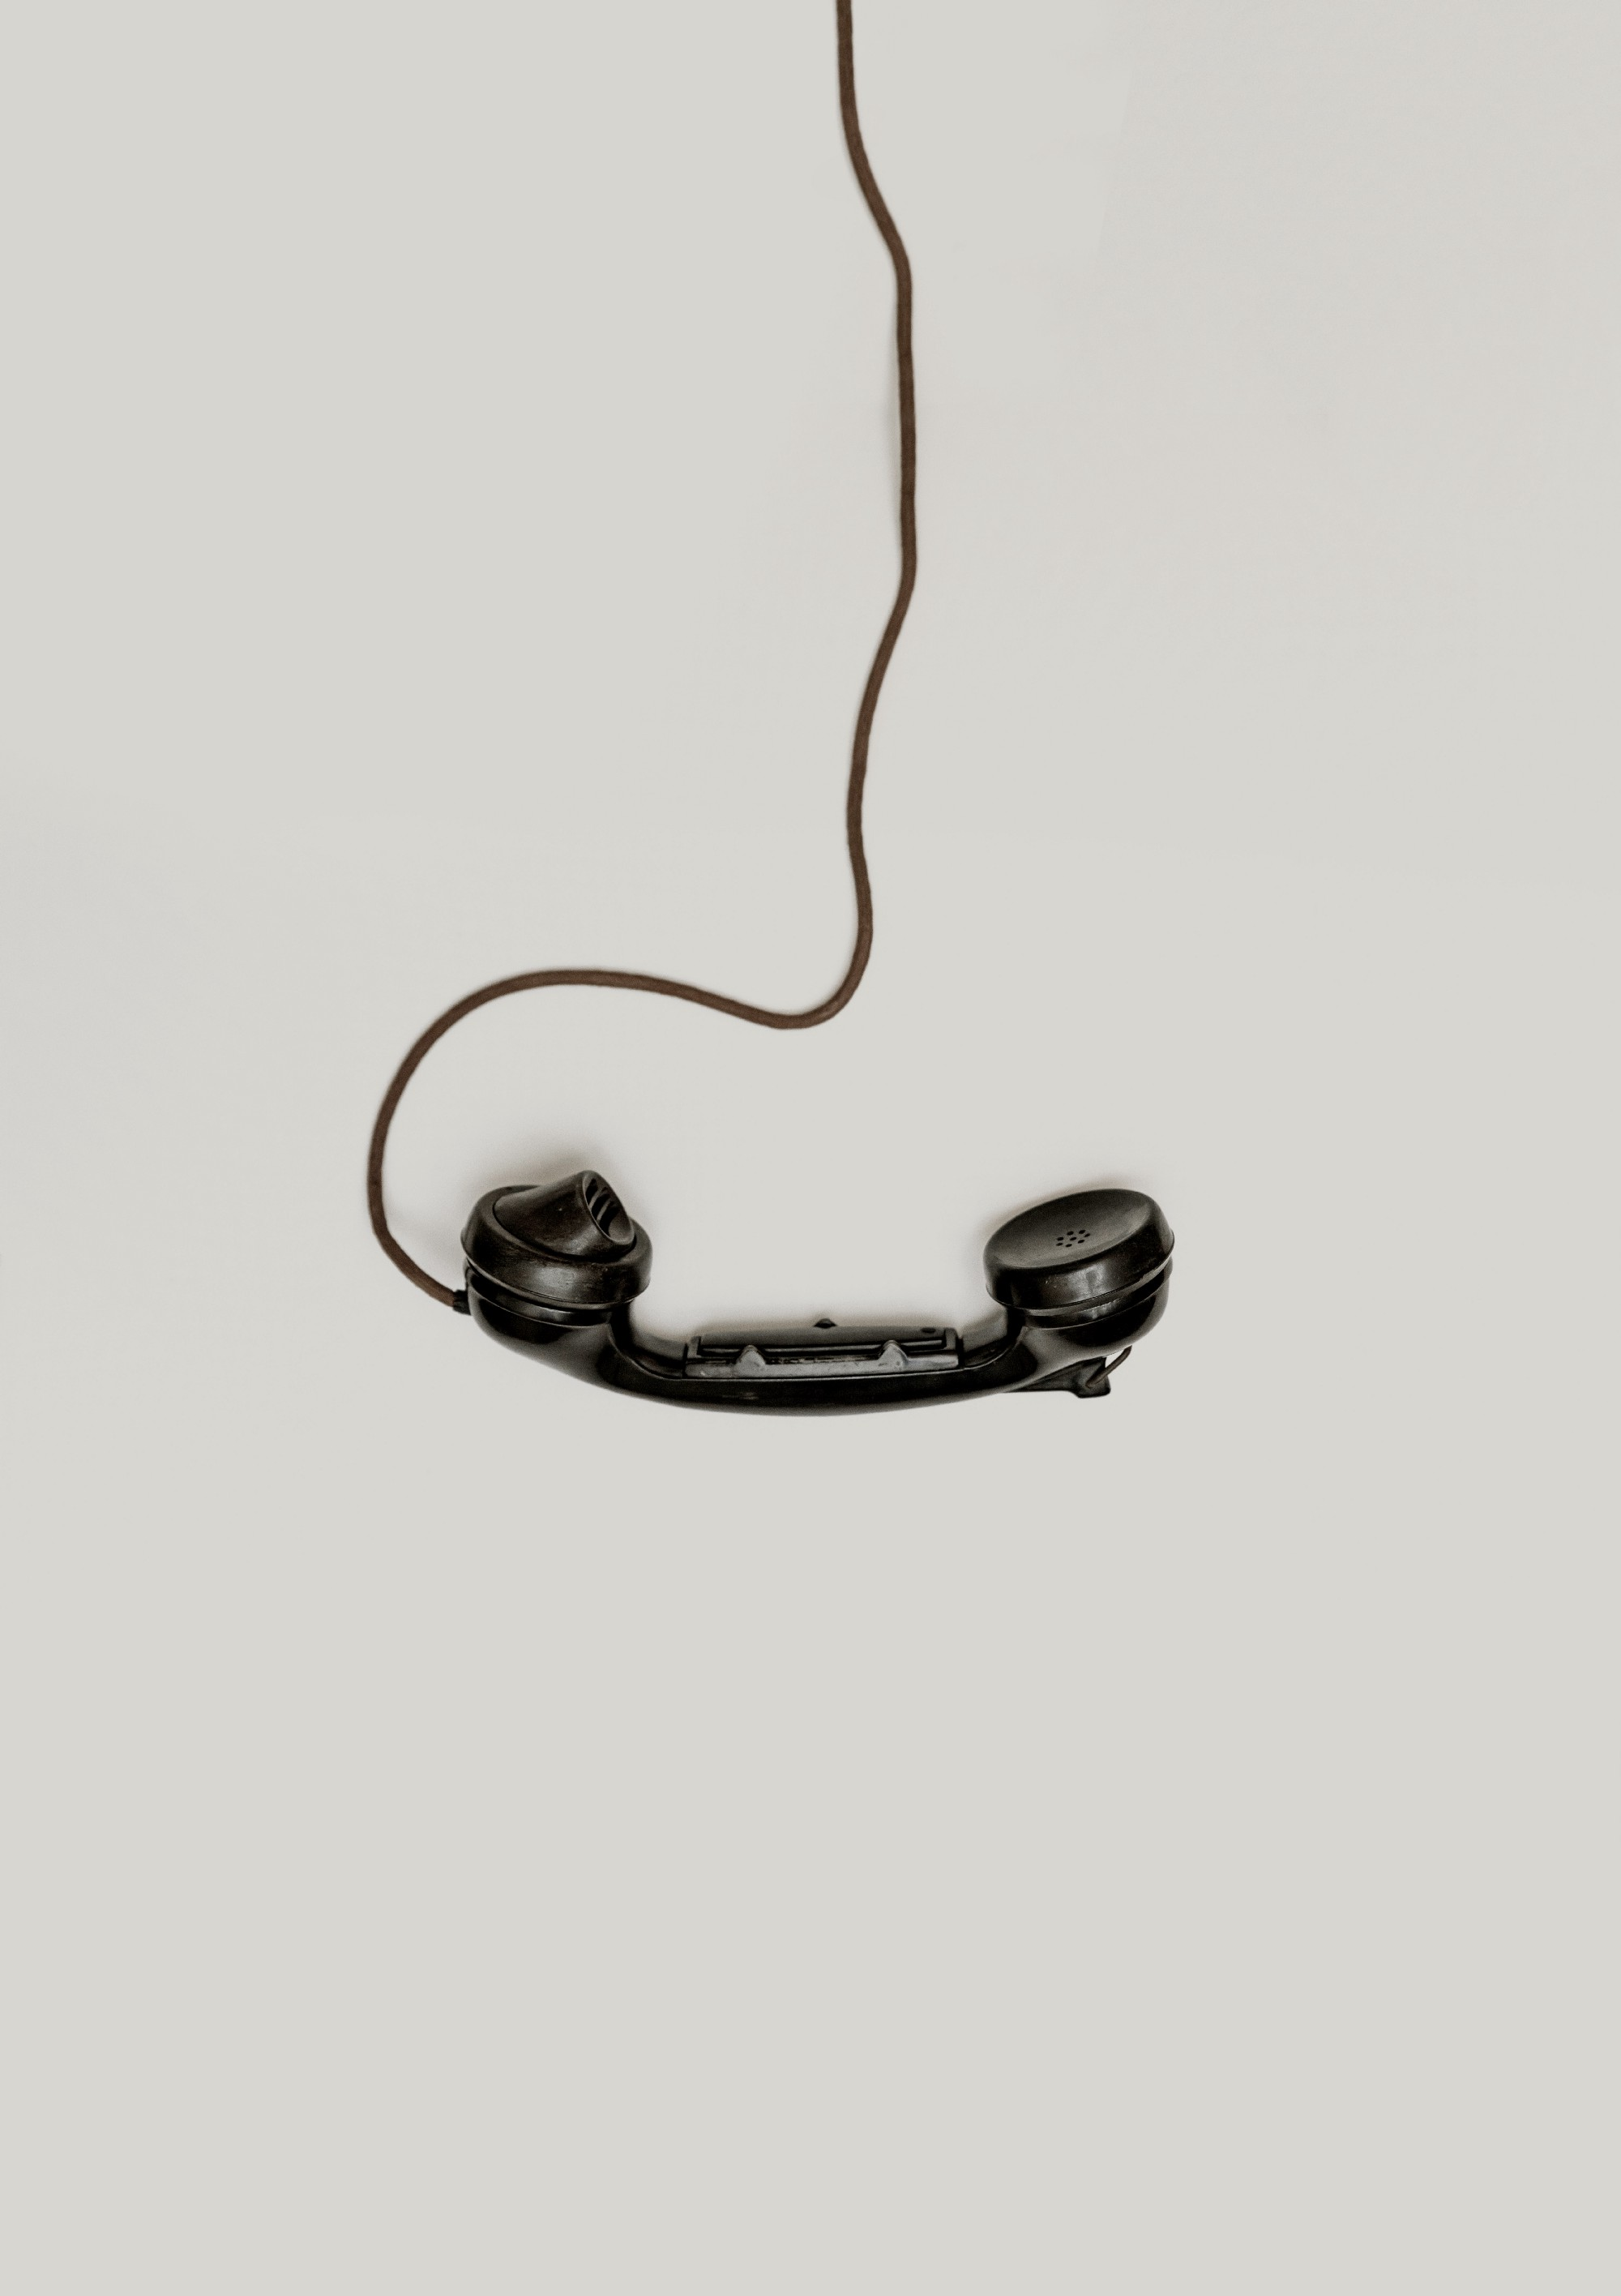 An image of a corded phone